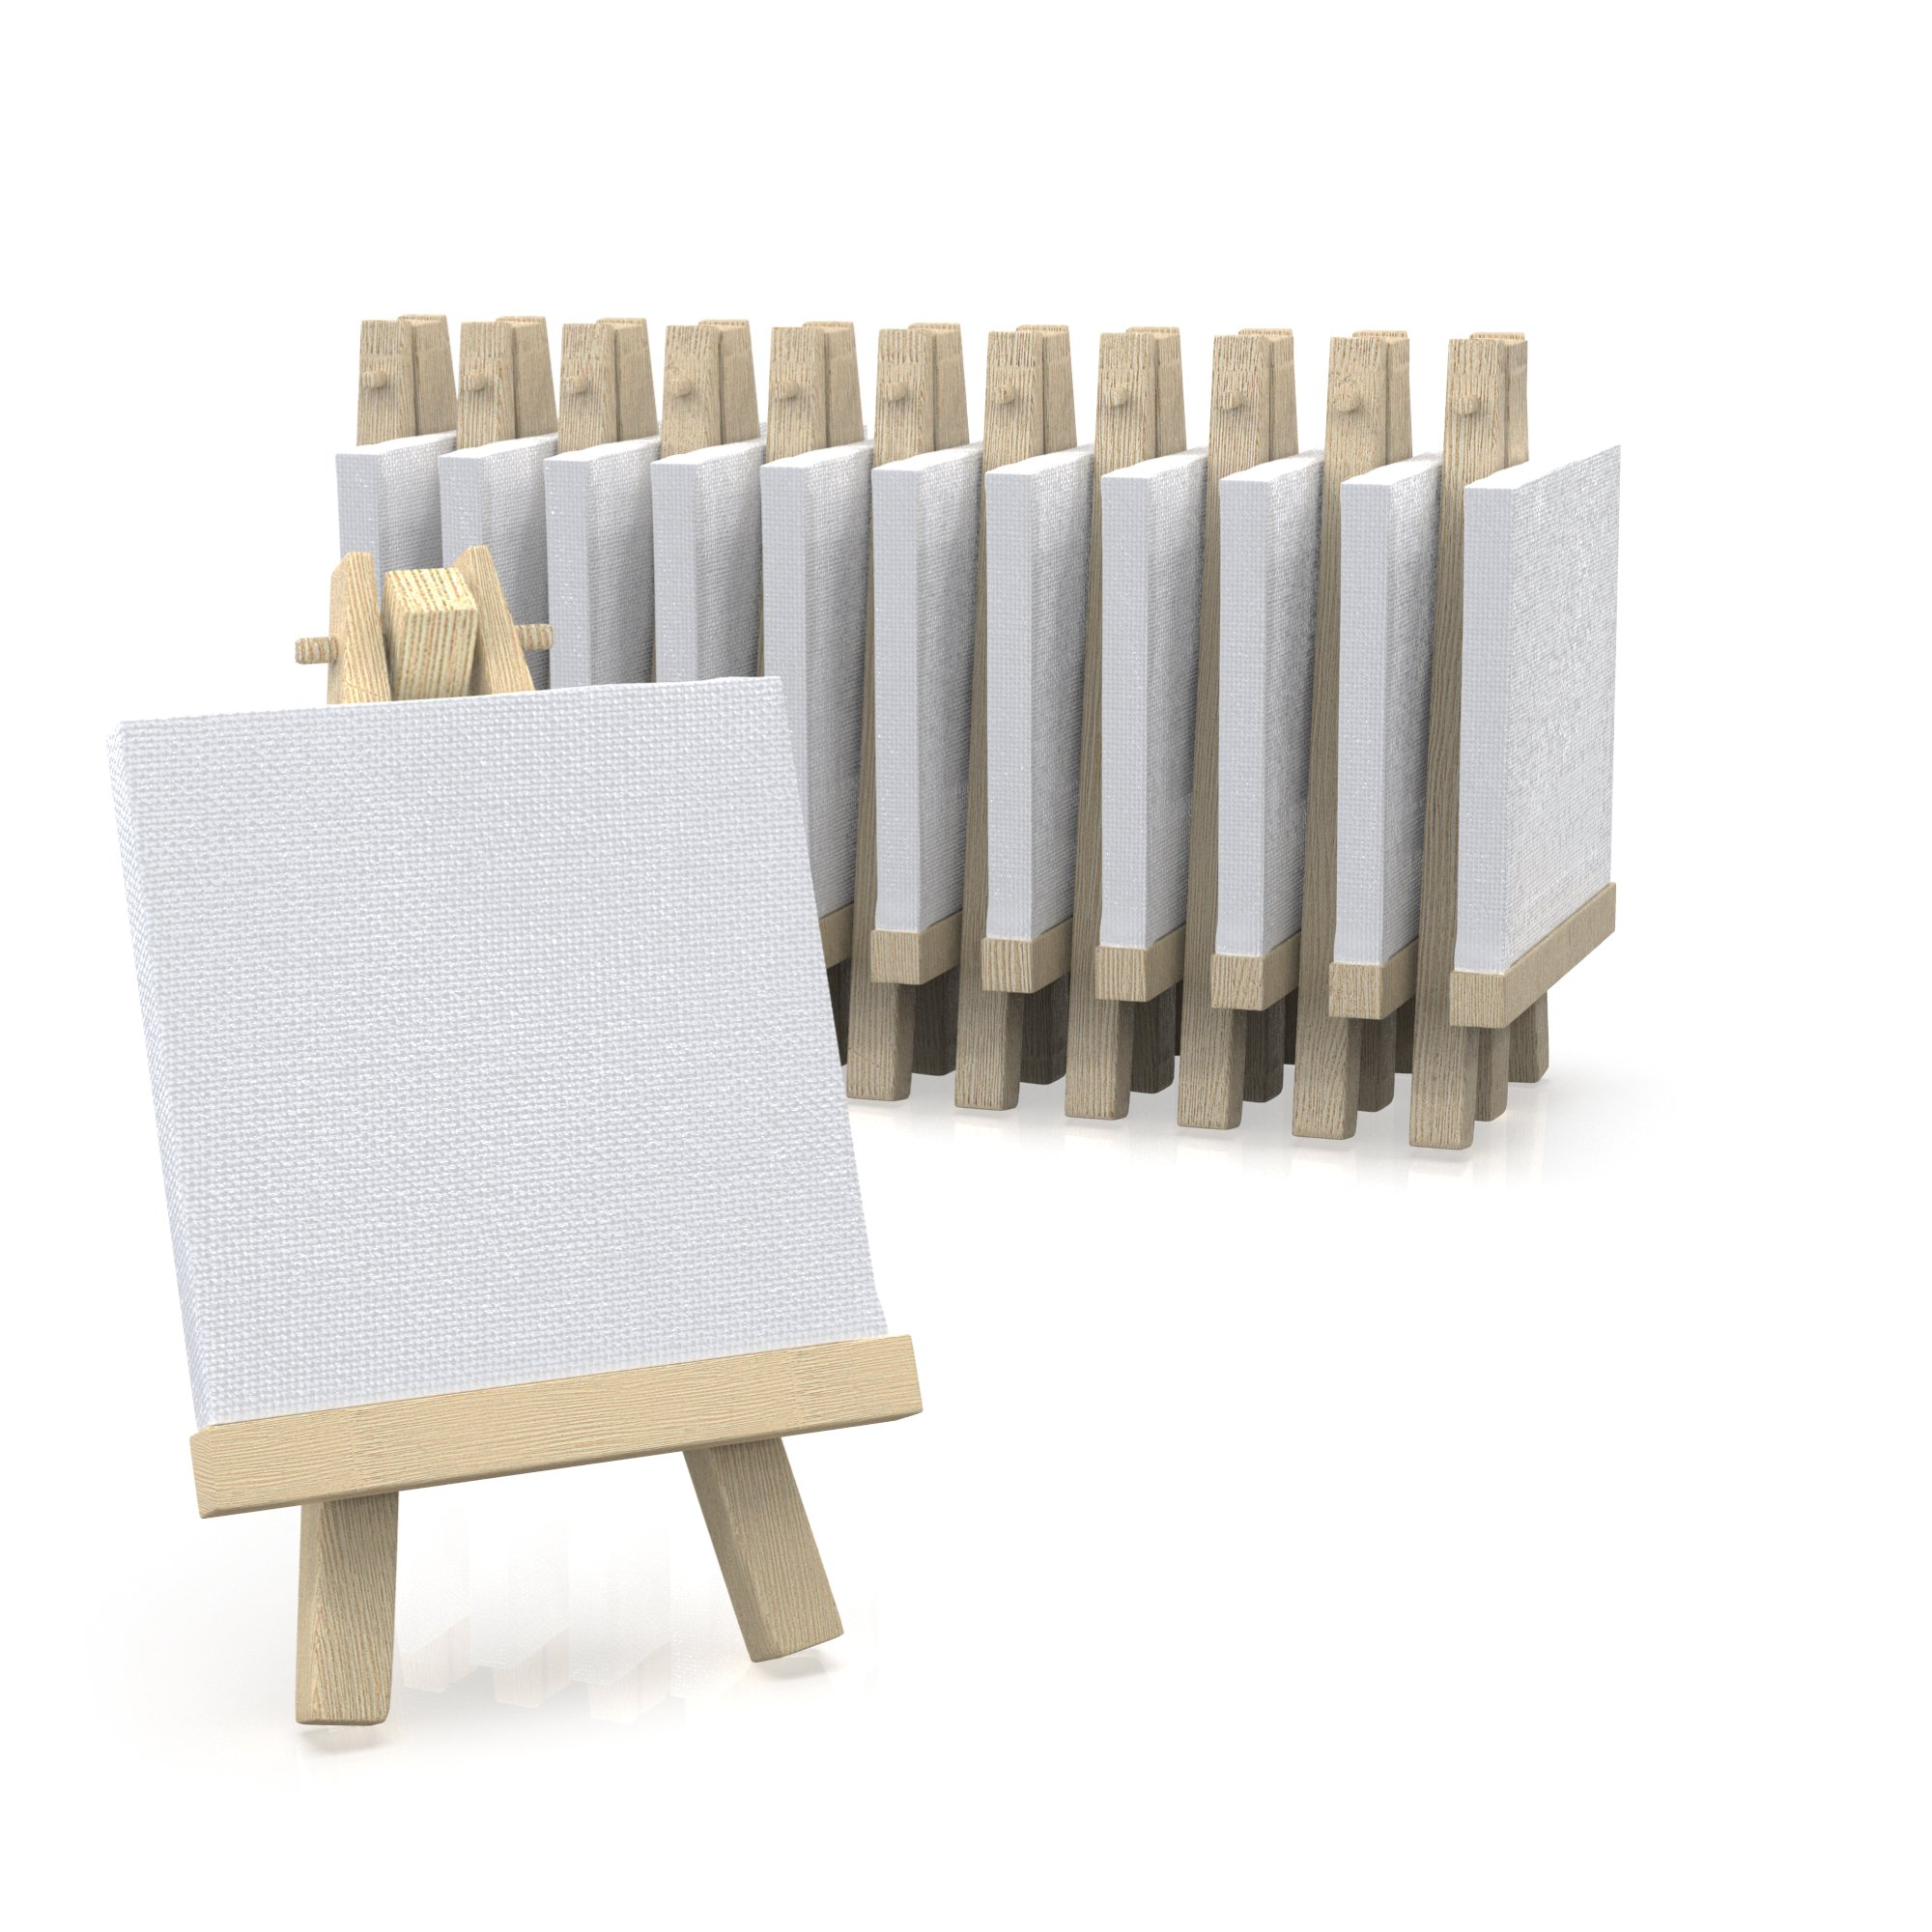 """3""""x3"""" Canvas for Painting with Easel, Academy Art Supplies (12 Pack)"""